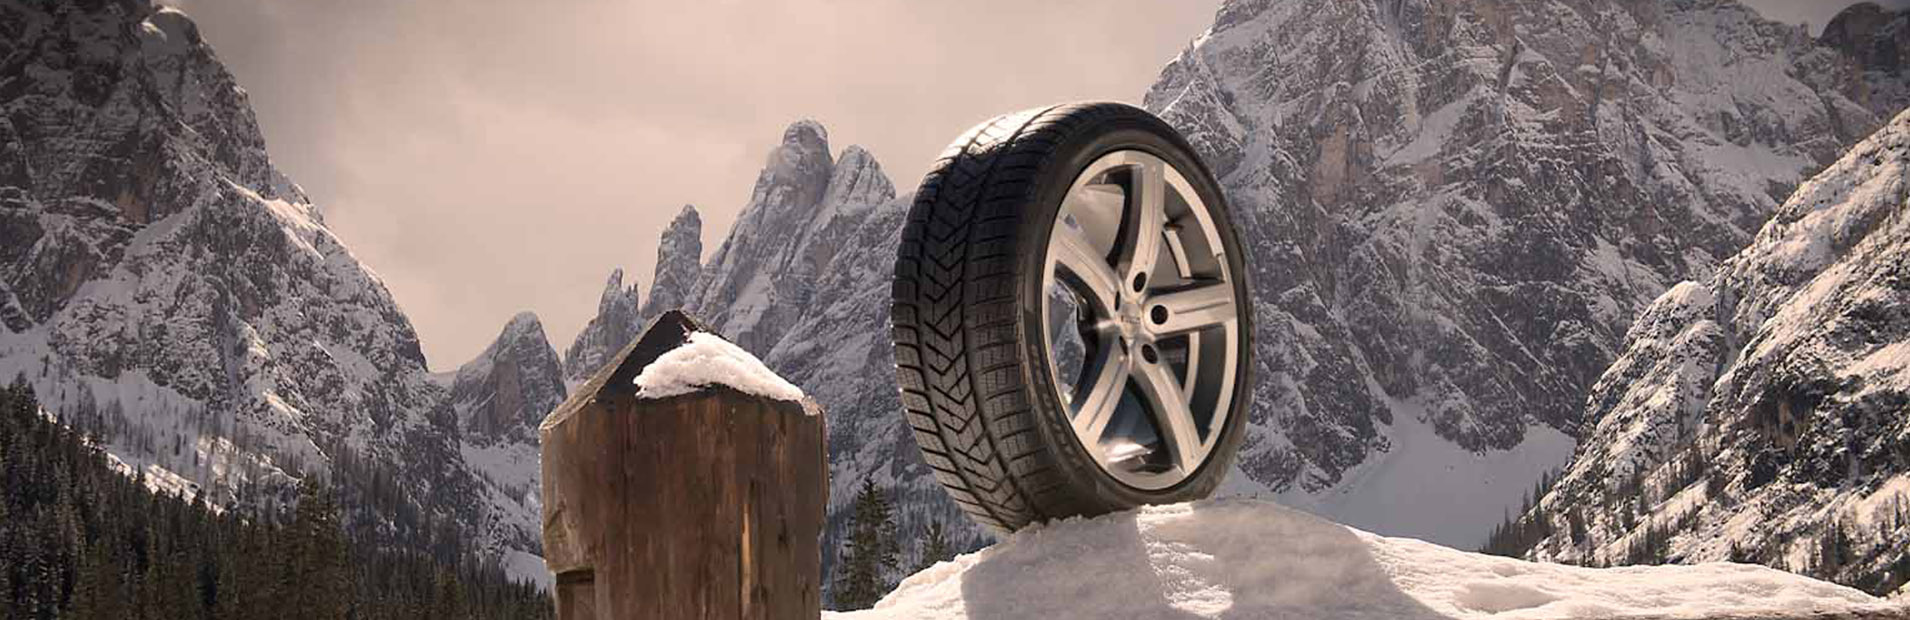 7e4ed80679 Winter Tyres  ideal for snow and... Santa Claus!